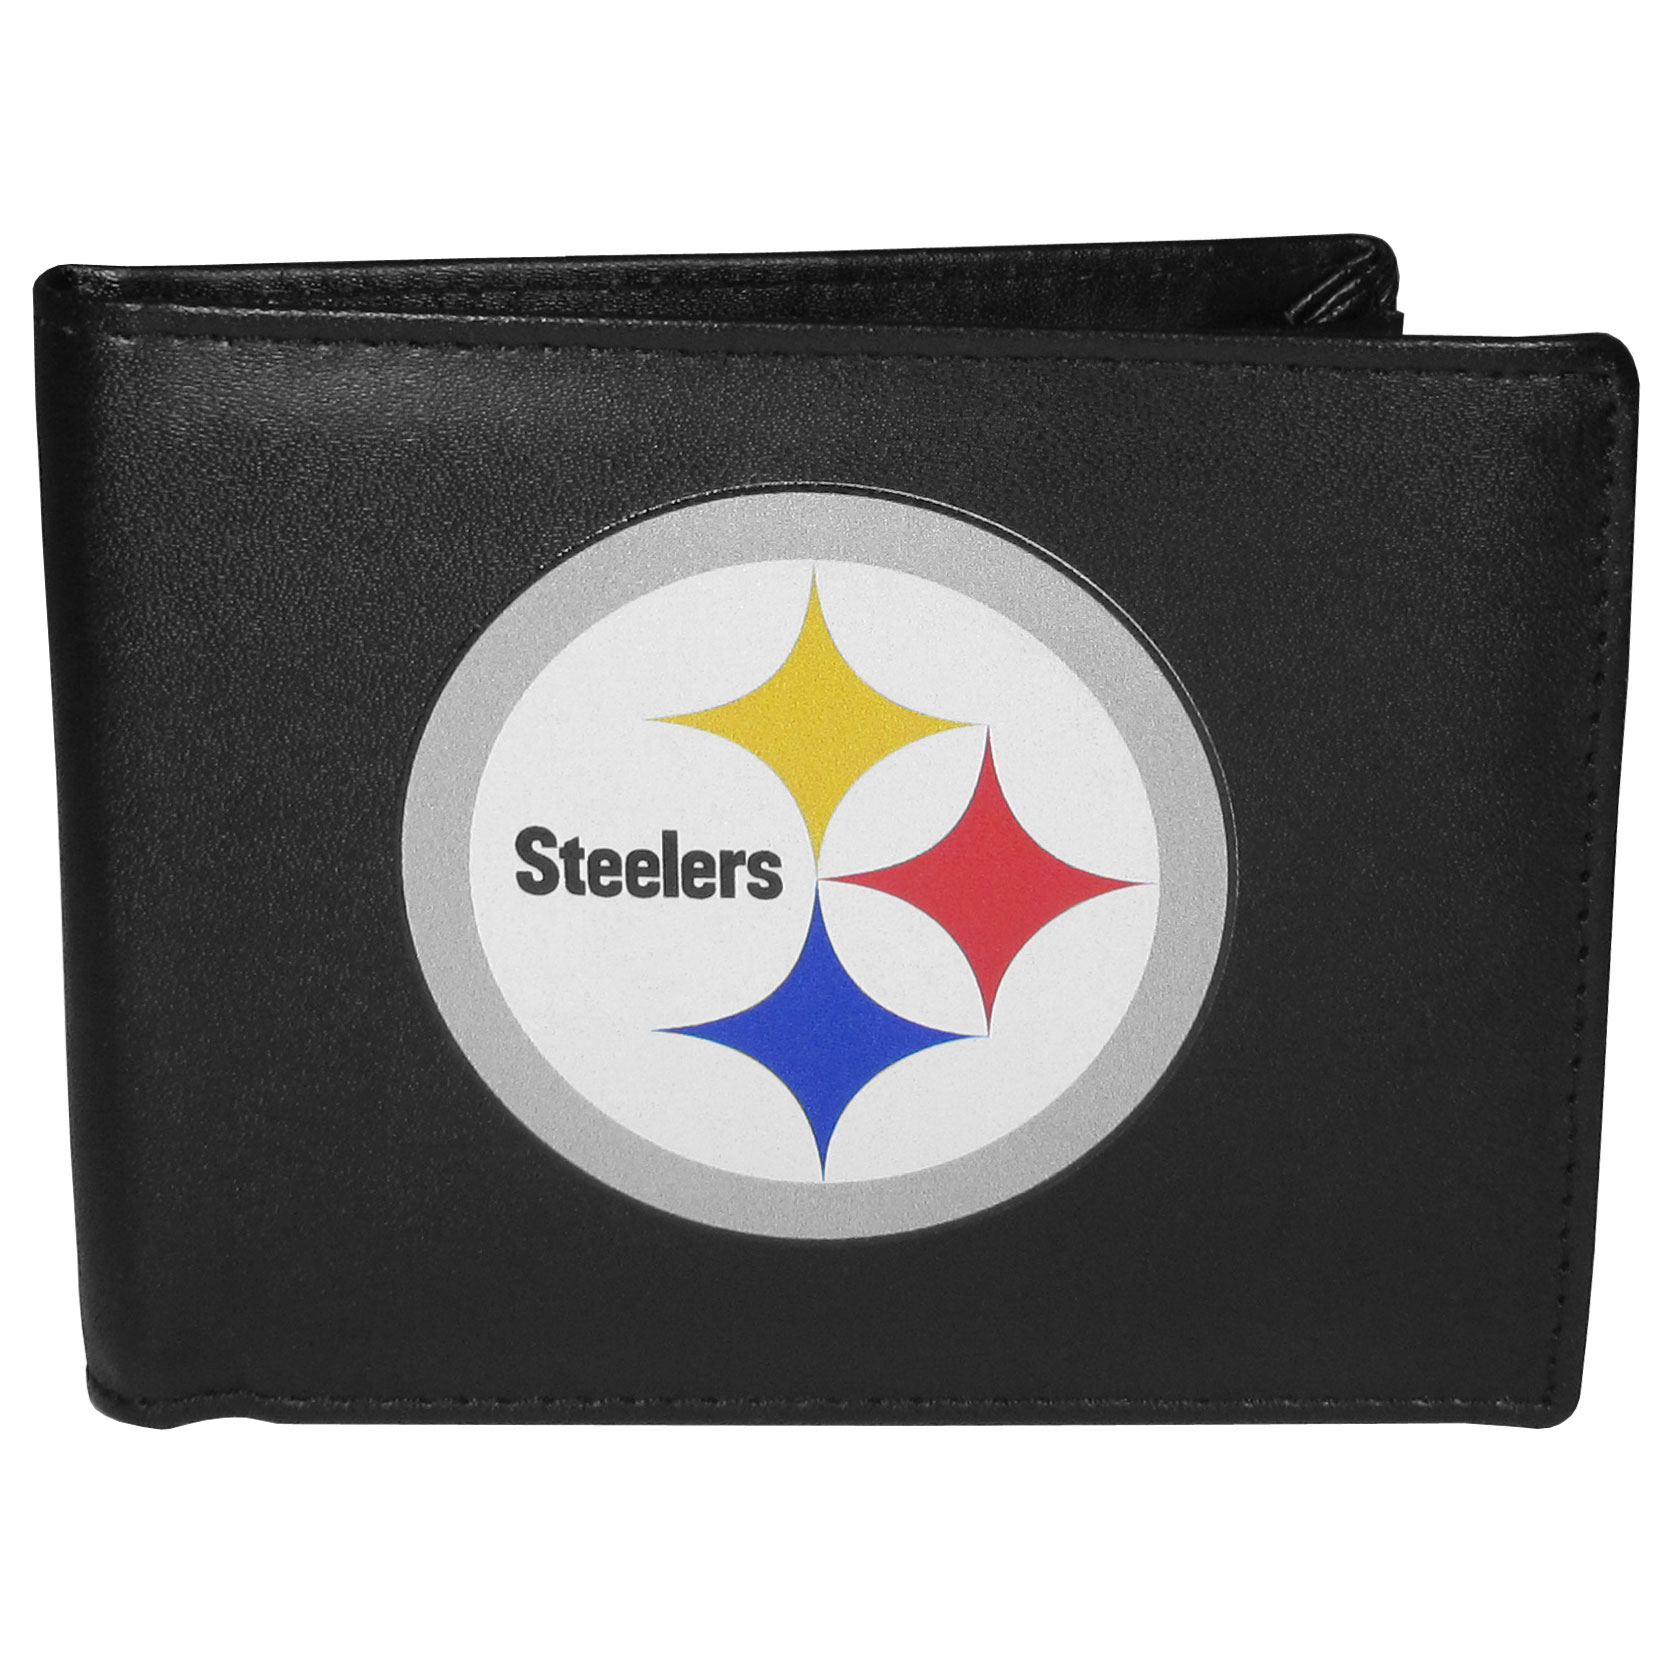 Pittsburgh Steelers Leather Bi-fold Wallet, Large Logo - Our classic fine leather bi-fold wallet is meticulously crafted with genuine leather that will age beautifully so you will have a quality wallet for years to come. The wallet opens to a large, billfold pocket and numerous credit card slots and has a convenient windowed ID slot. The front of the wallet features an extra large Pittsburgh Steelers printed logo.